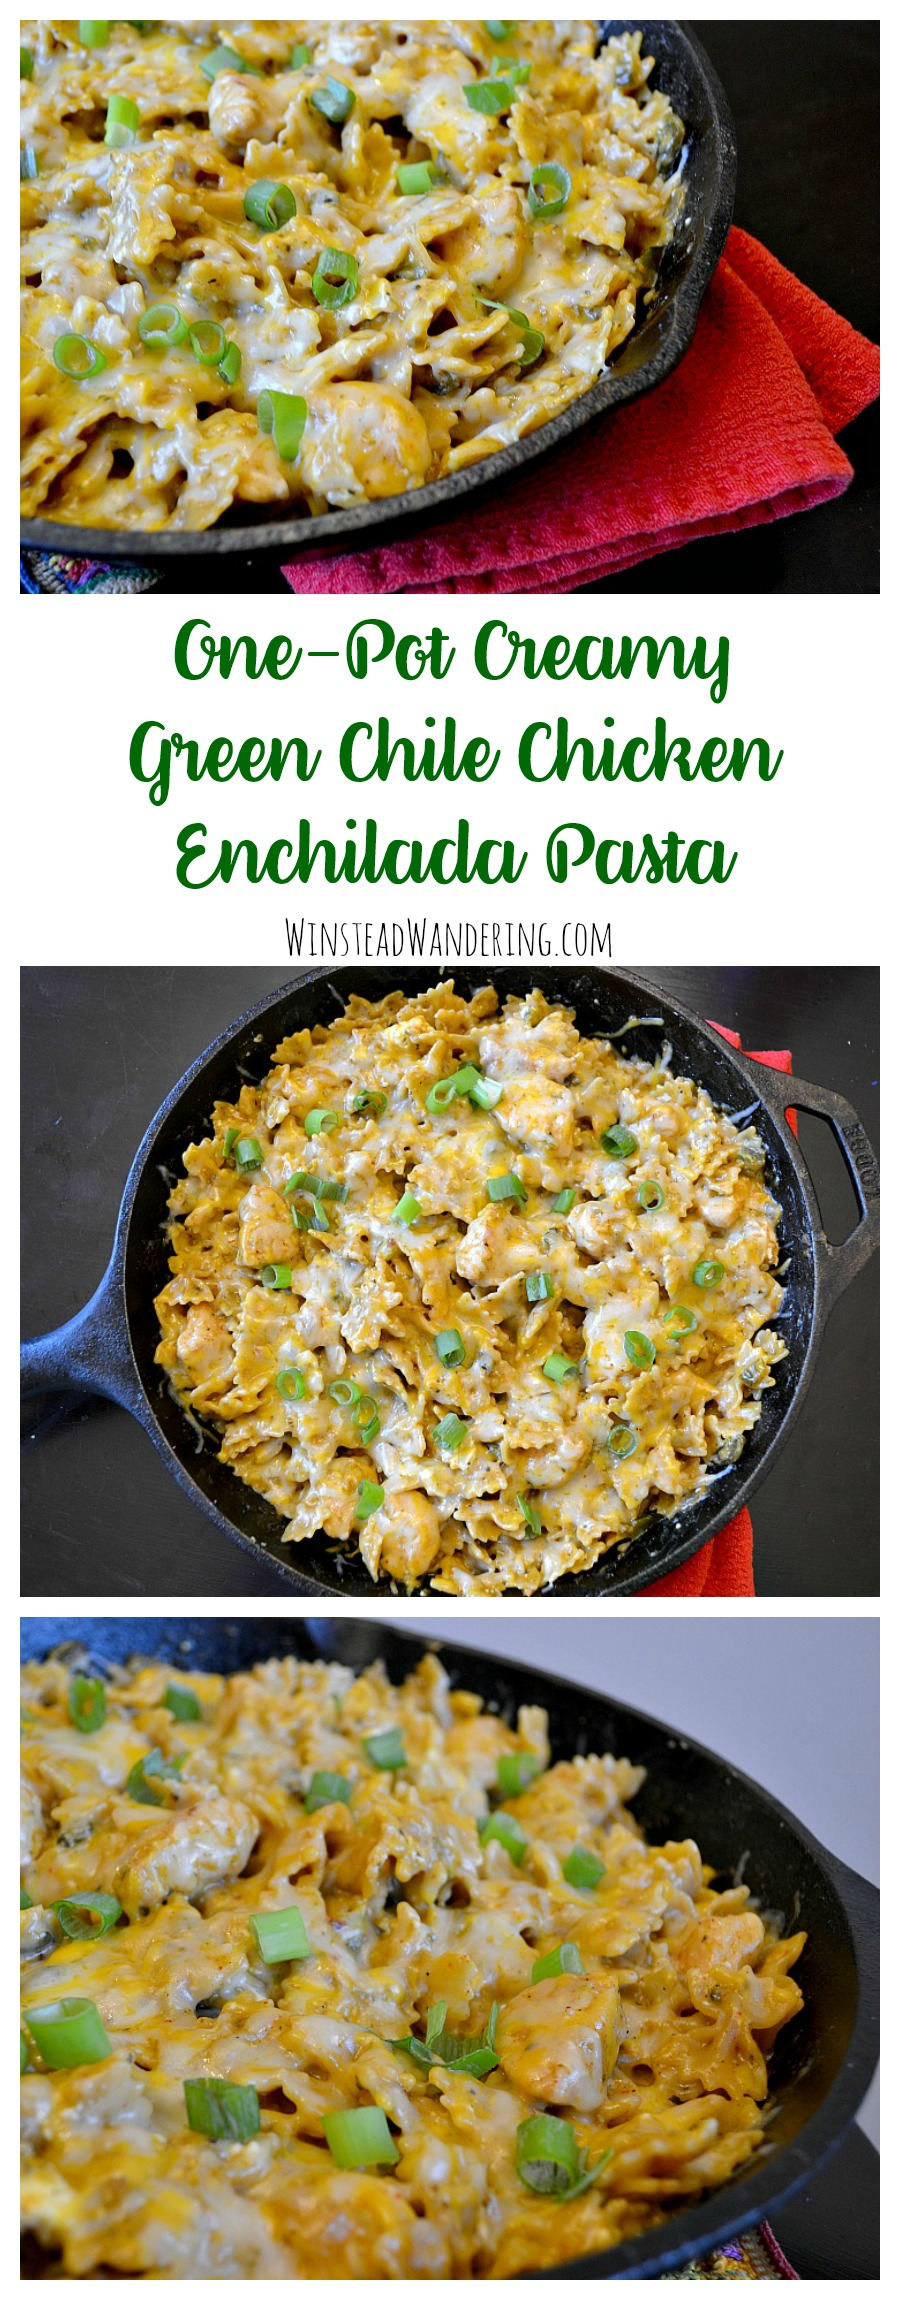 Tired of plain old enchiladas? Got leftover sauce? One-Pot Creamy Green Chile Chicken Enchilada Pasta is a surefire way to break out of a rut and please a crowd.